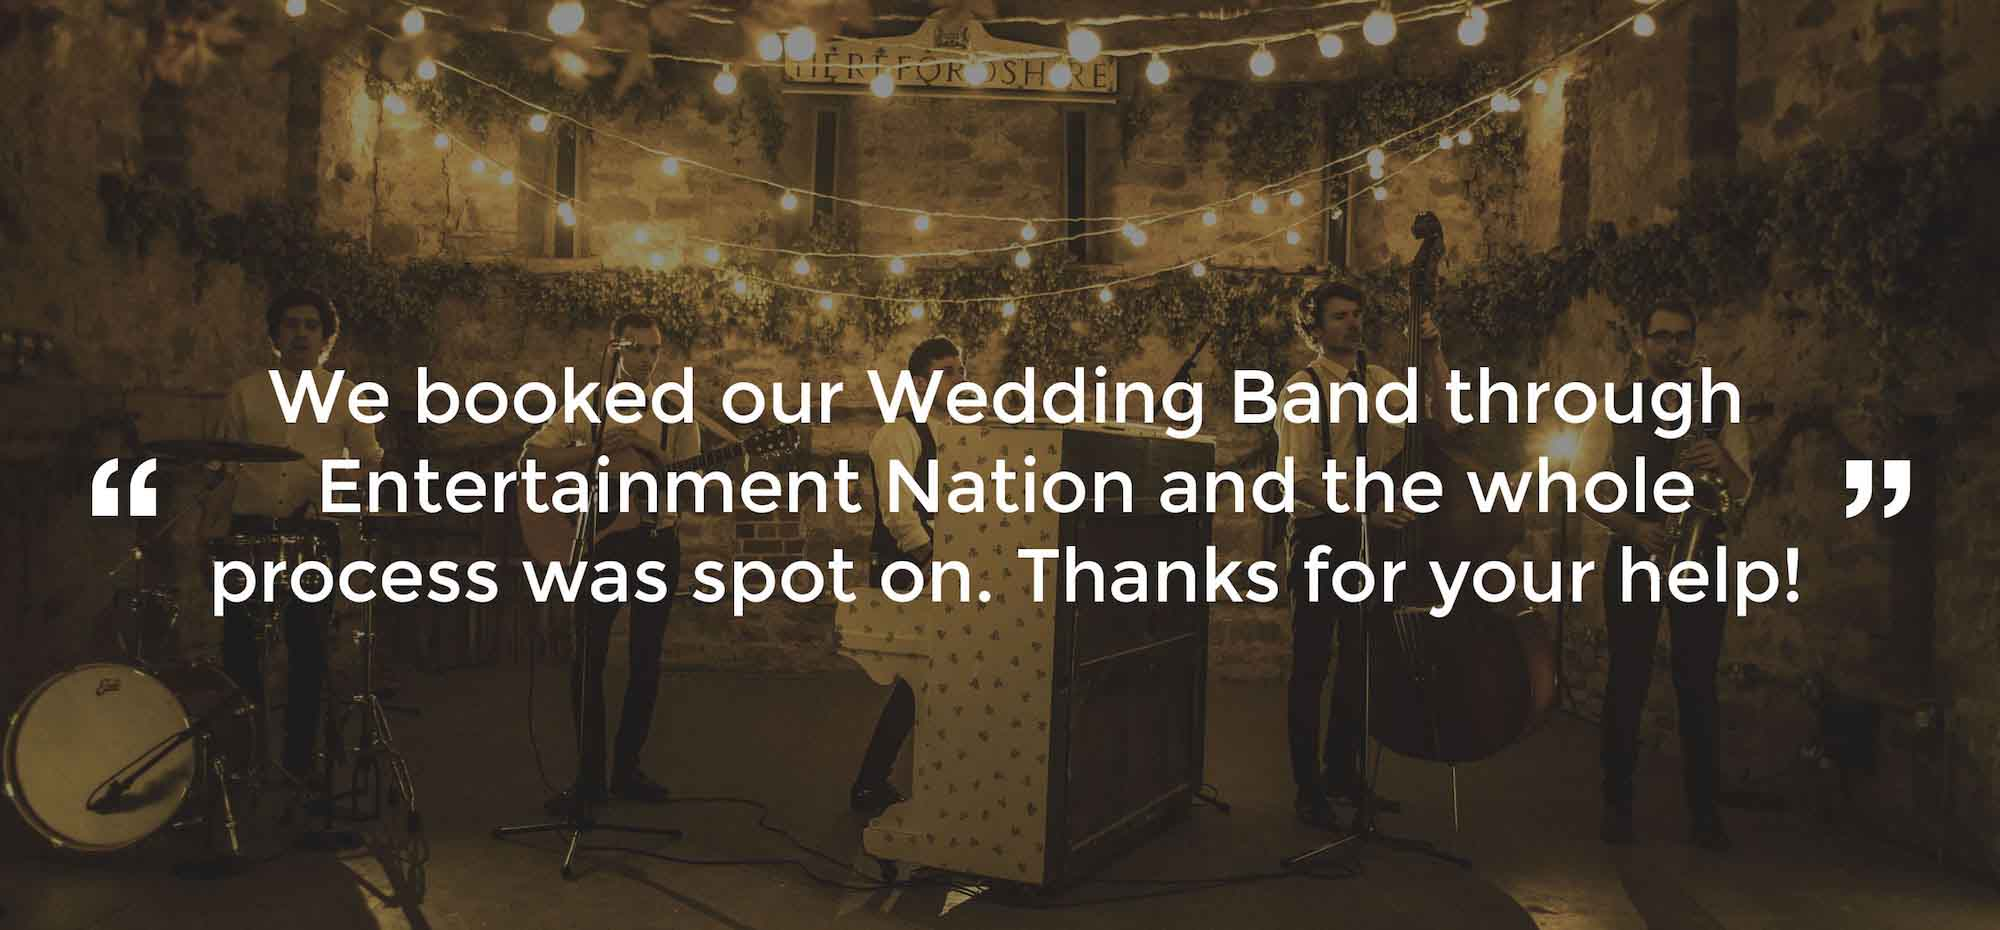 Client Review of a Wedding Band Rutland